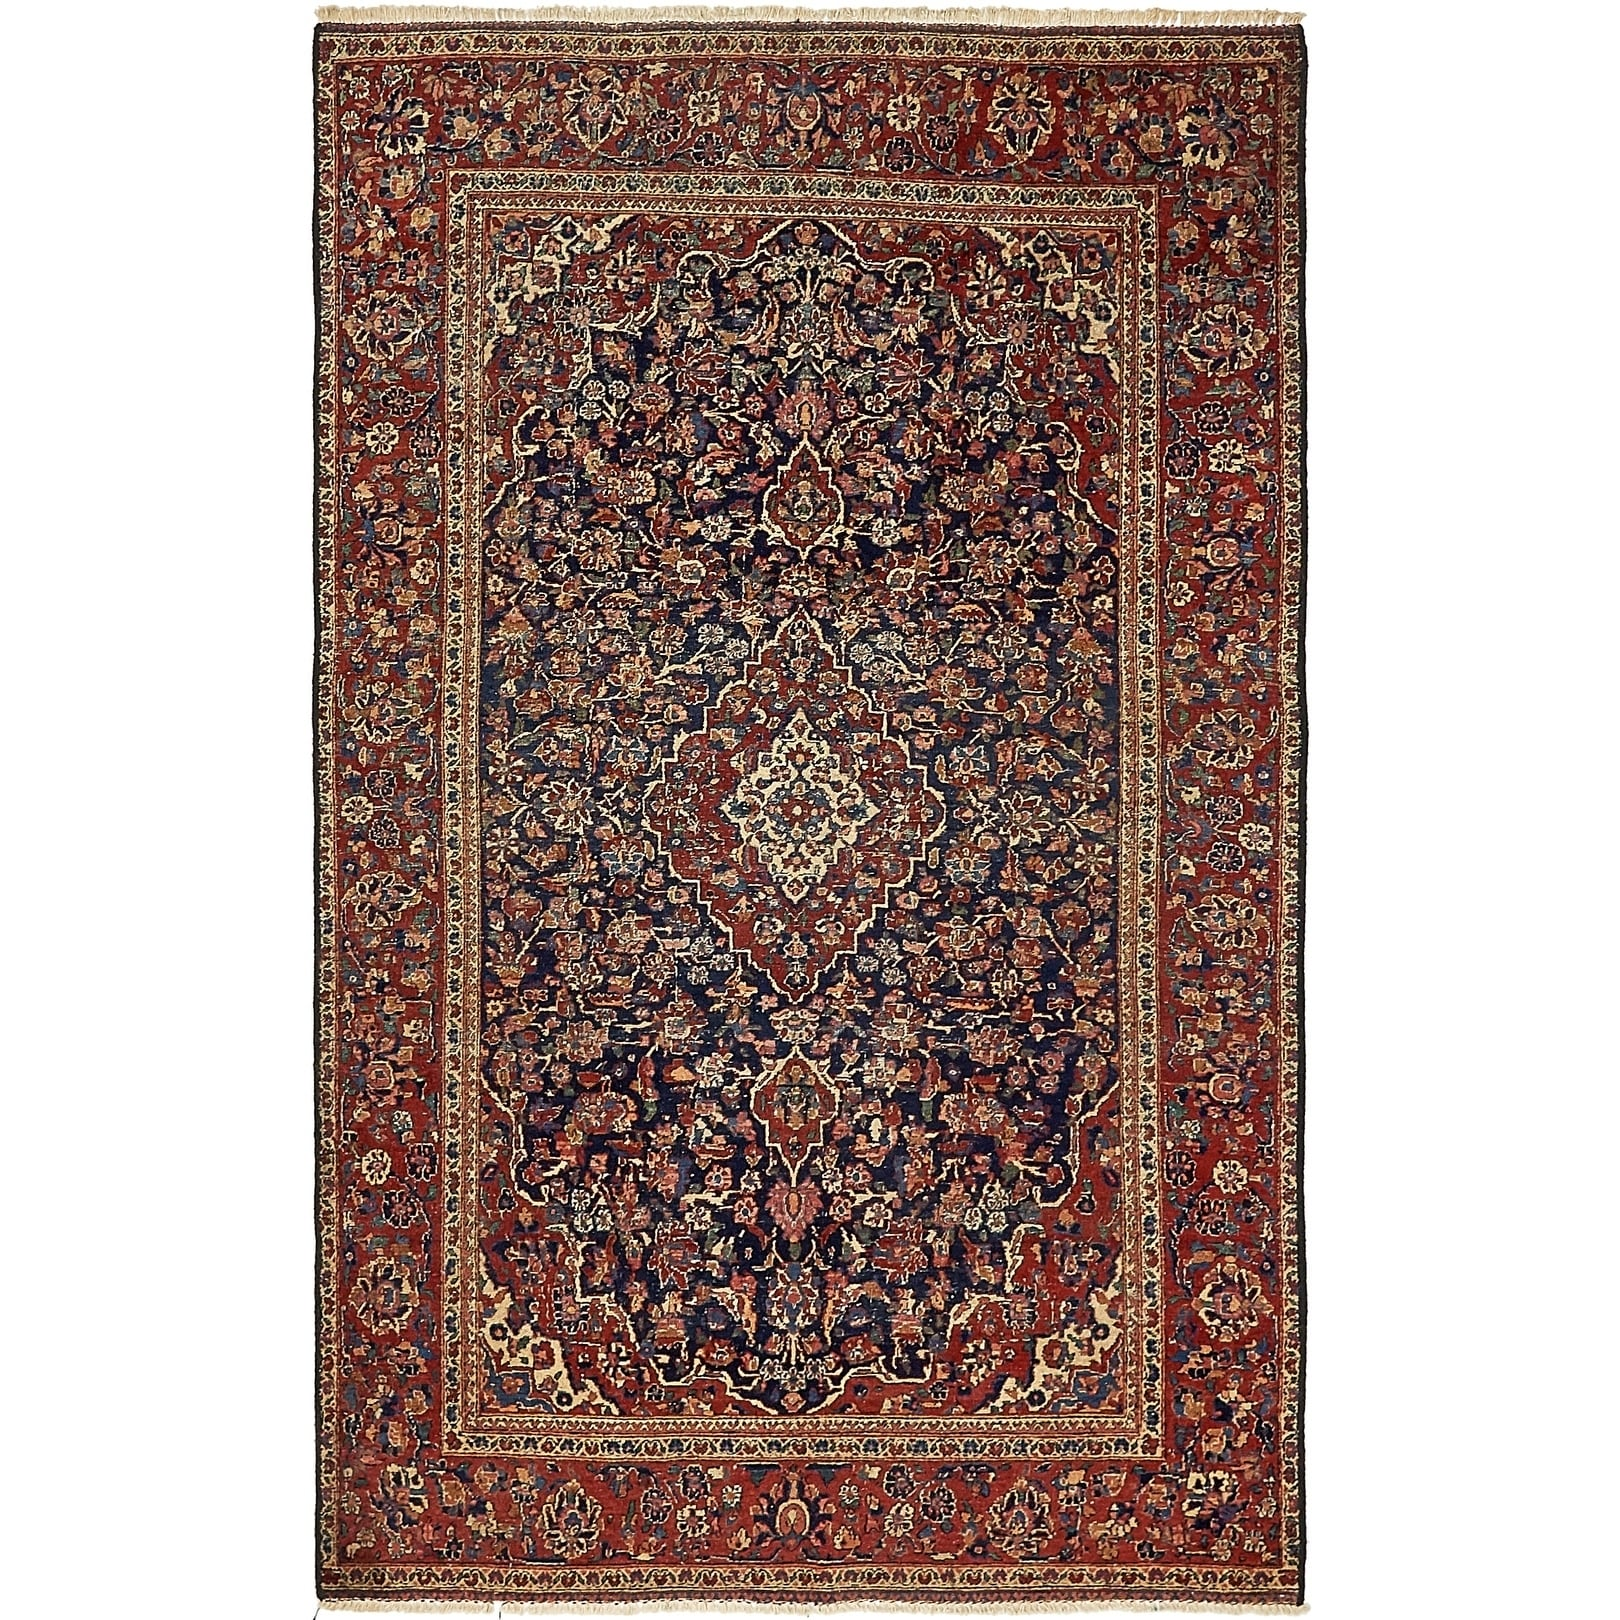 Hand Knotted Kashan Antique Wool Area Rug - 4' x 6' 7 (Navy blue - 4' x 6' 7)